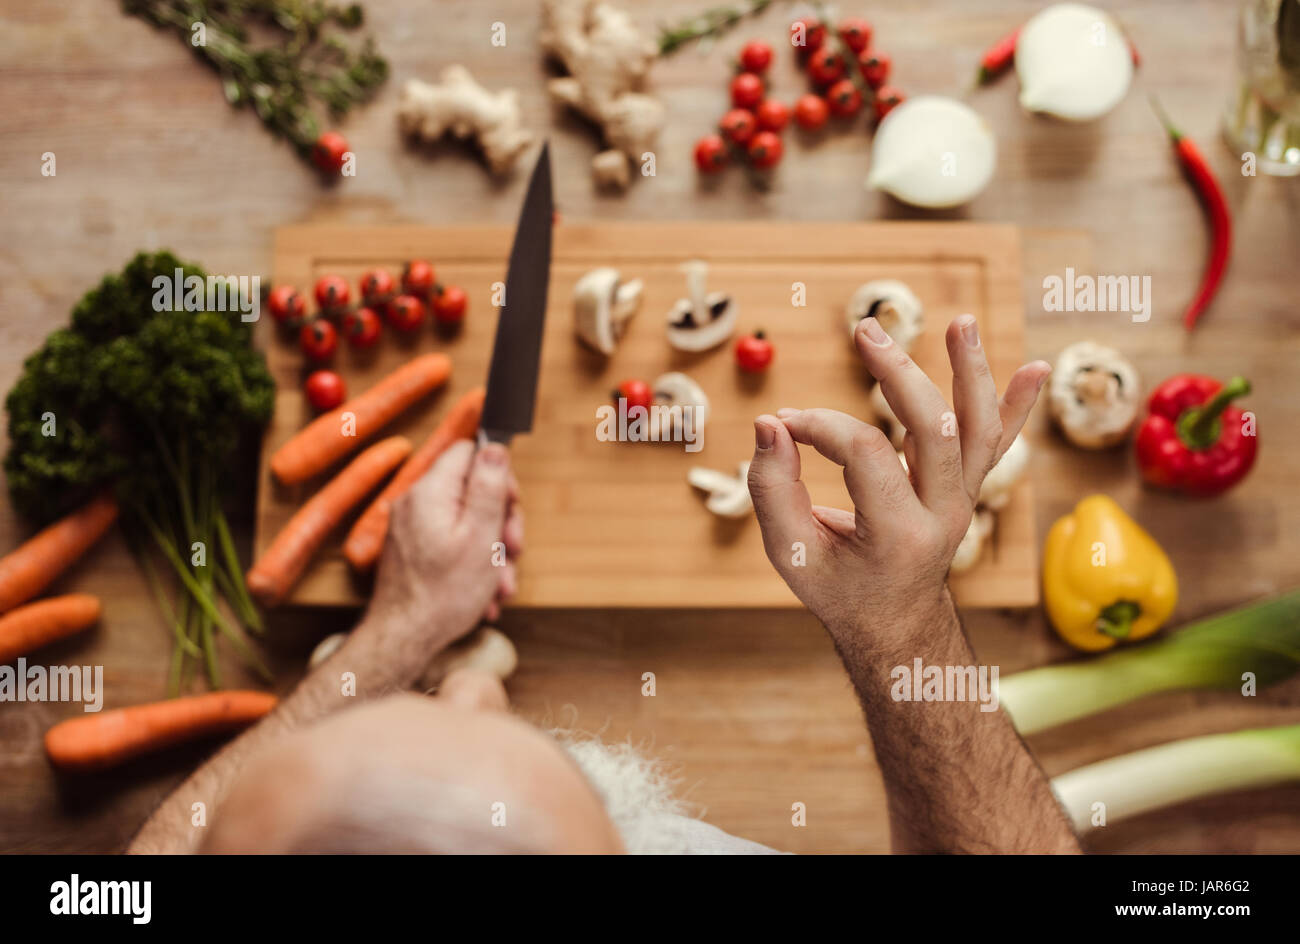 Man preparing vegan food  - Stock Image